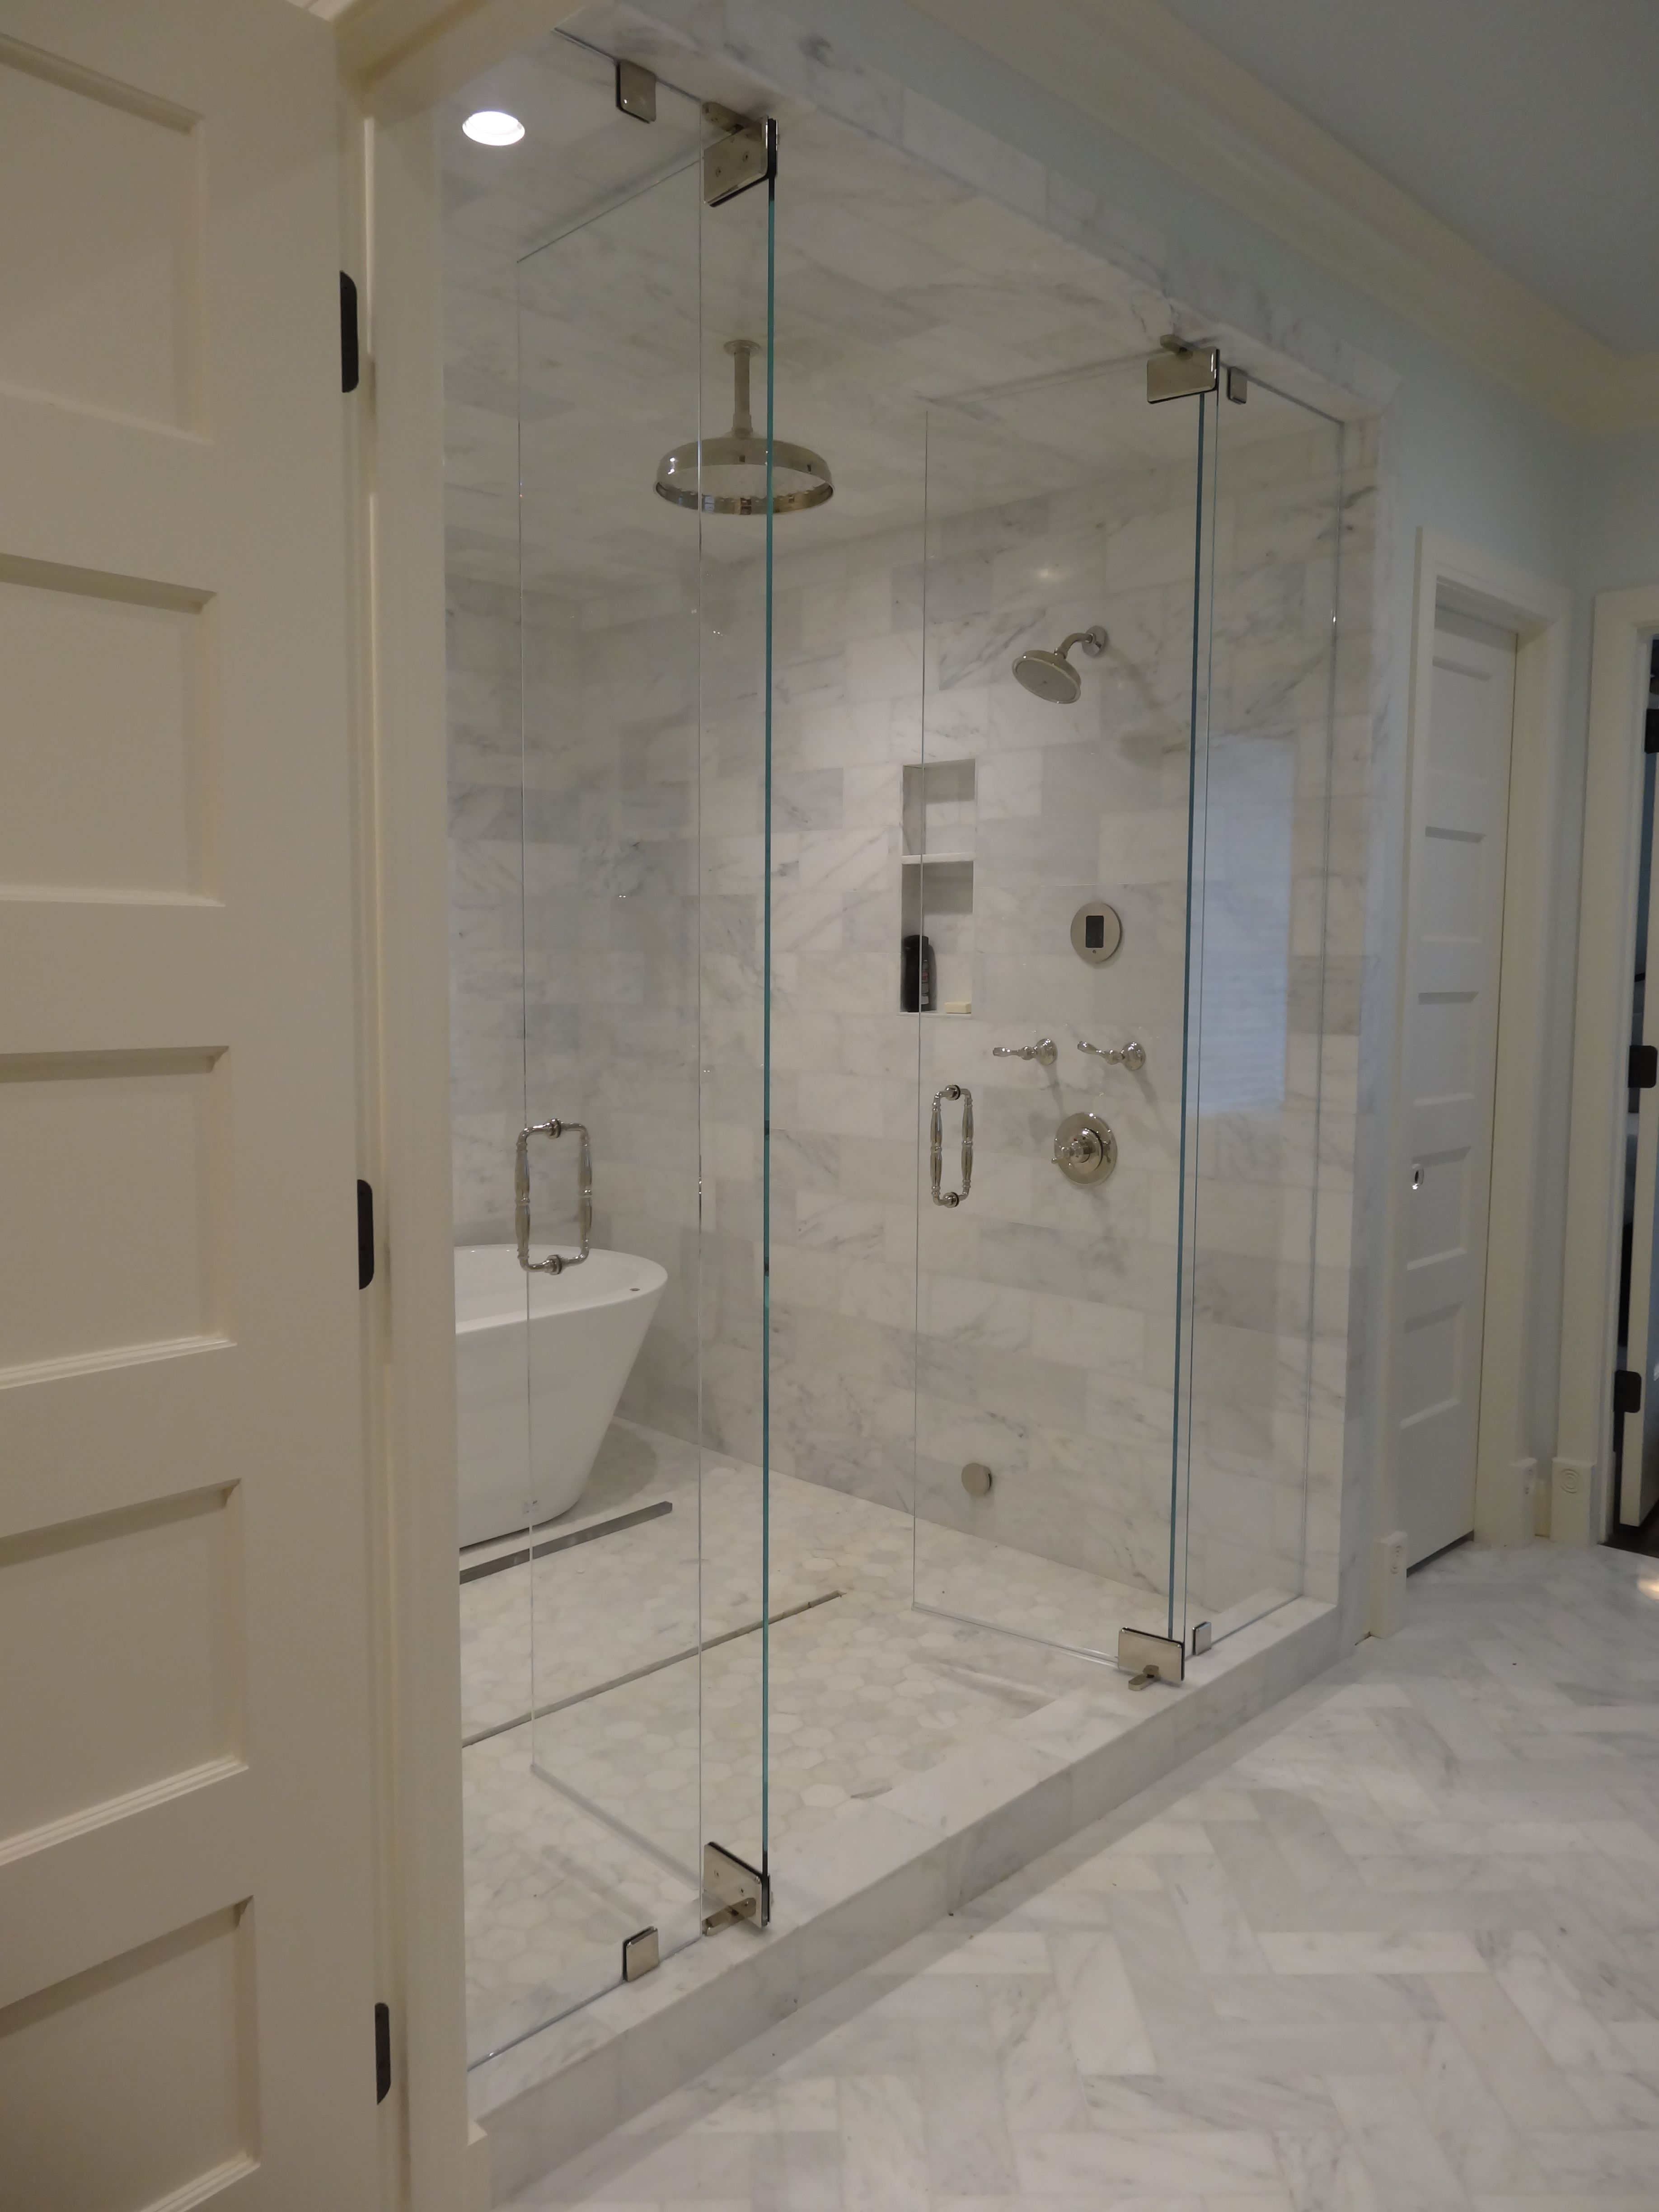 Steam Shower With Marble Tiling Swing In And Out Doors With A